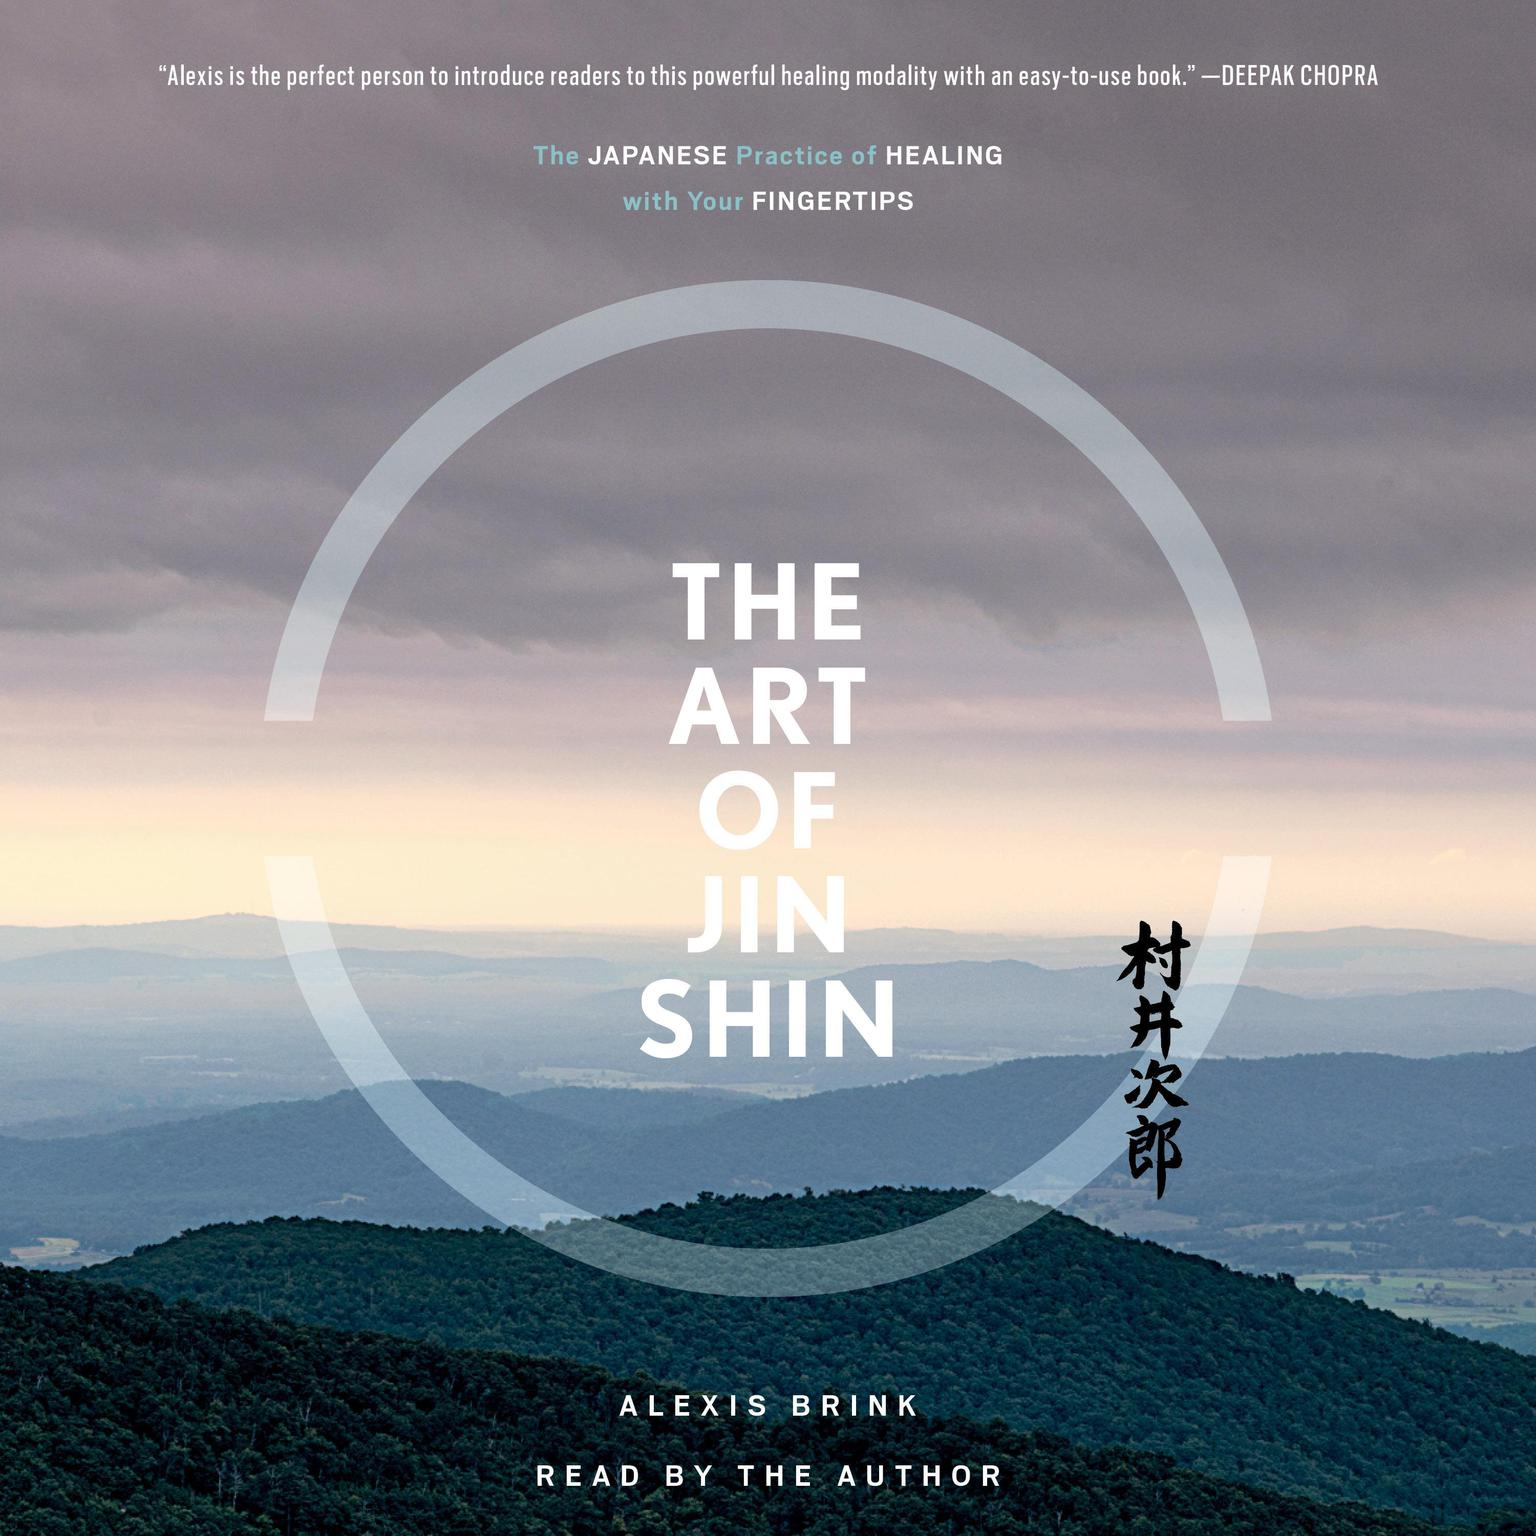 Printable The Art of Jin Shin: The Japanese Practice of Healing with Your Fingertips Audiobook Cover Art